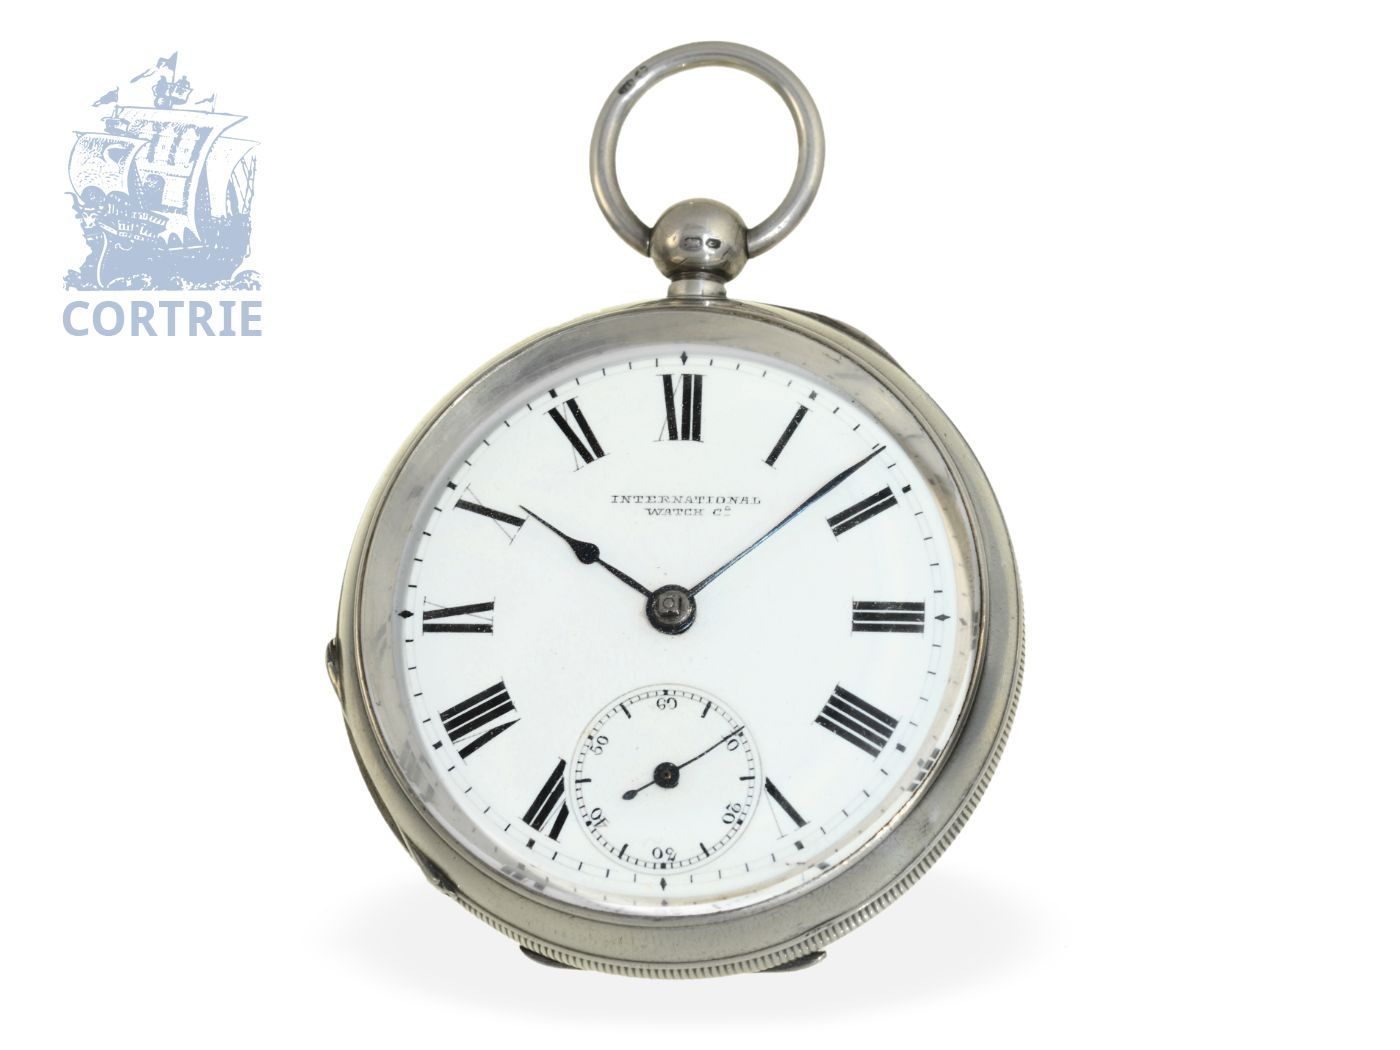 Pocket watch: very rare and early IWC watch for the English market, full plate movement Seeland no. 11014, ca. 1885-